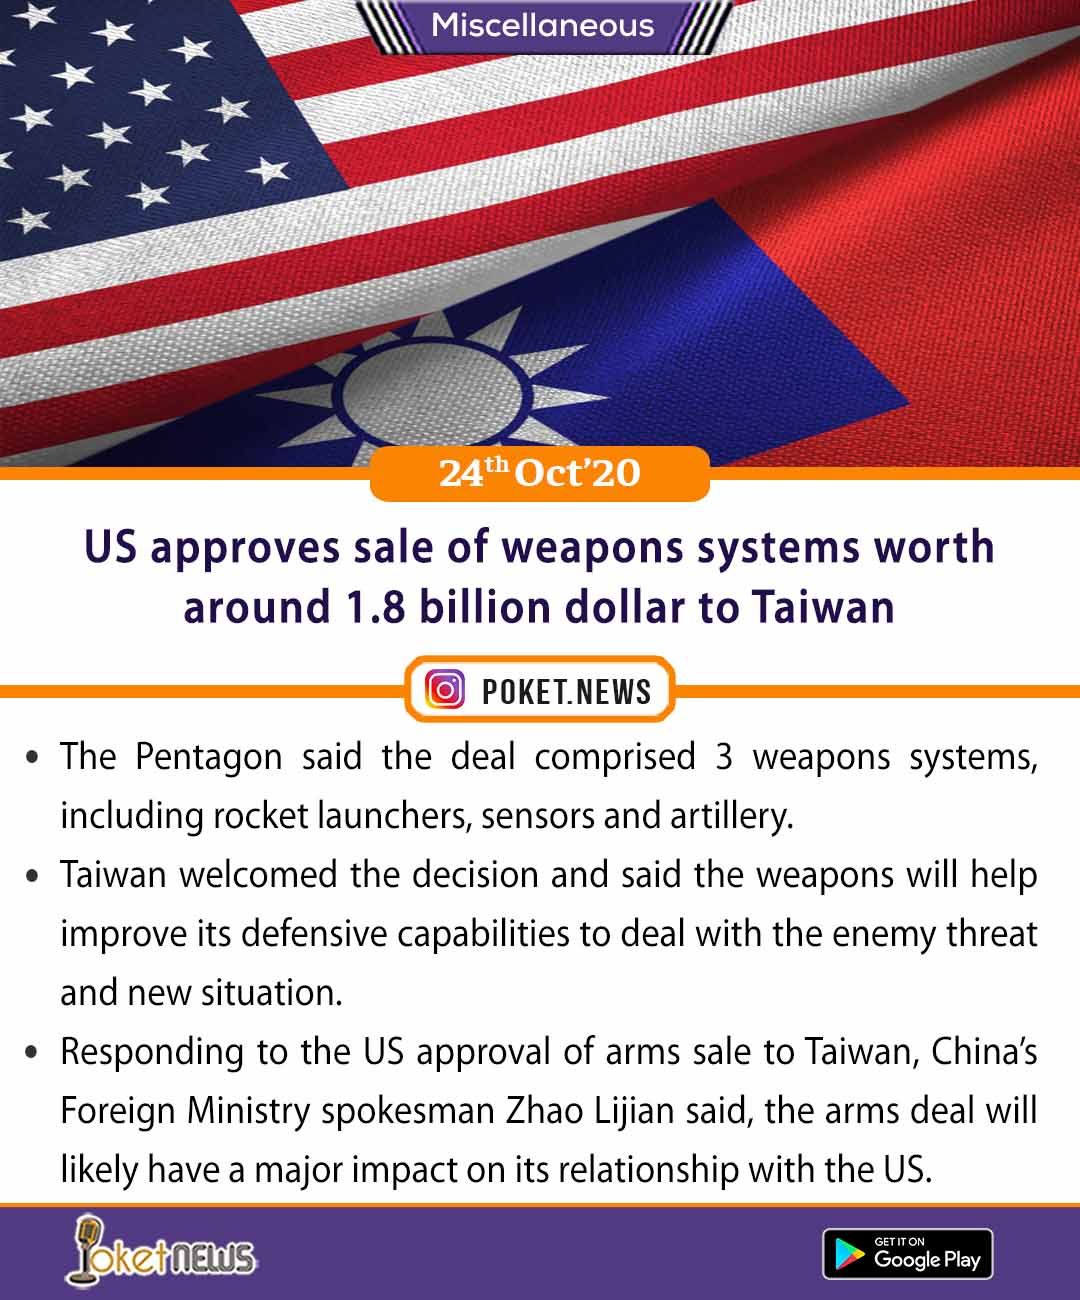 US approves sale of weapons systems worth around 1.8 billion dollar to Taiwan